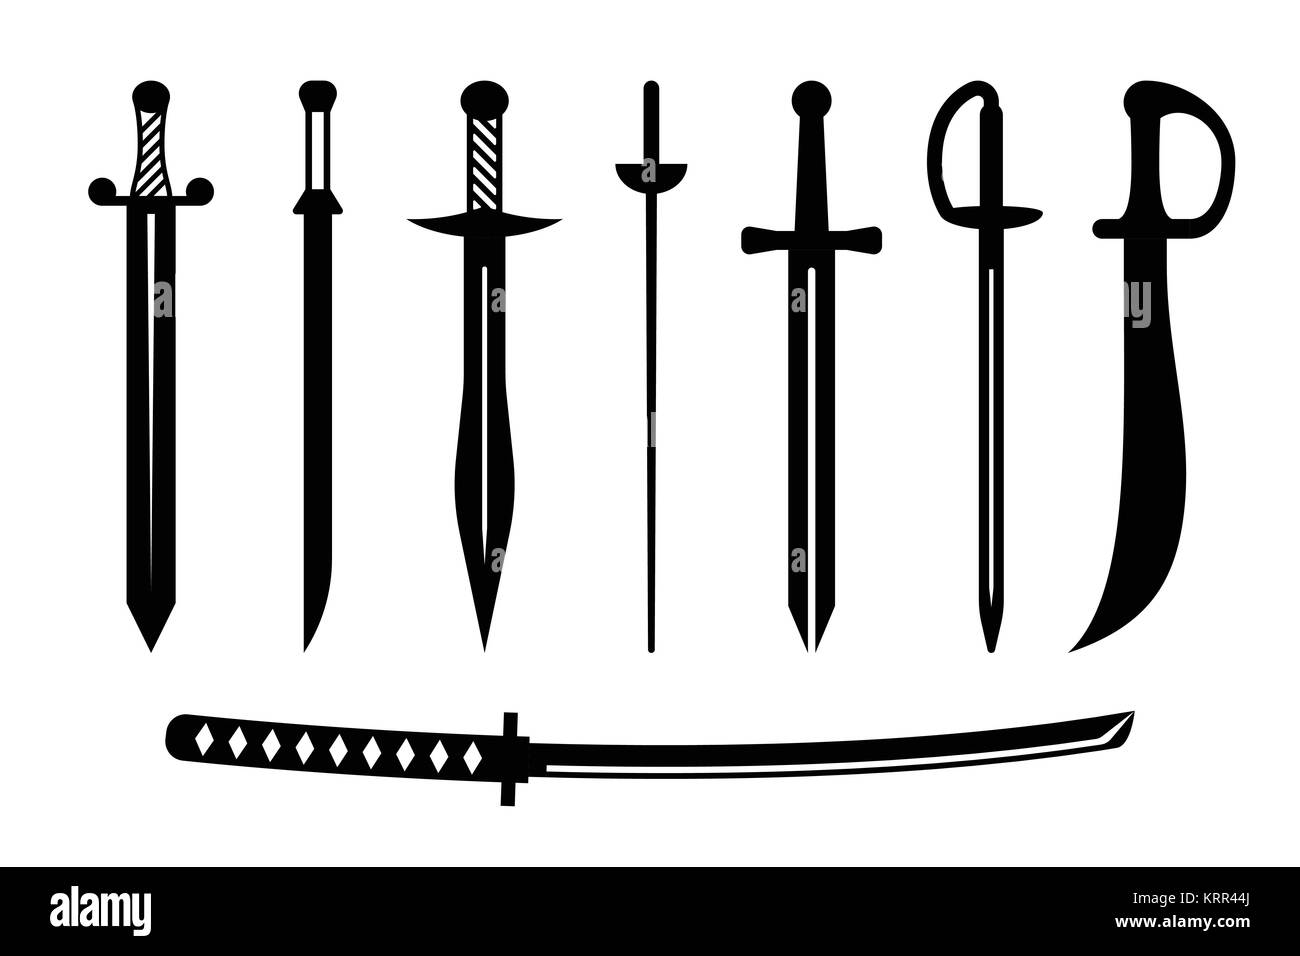 Vector military sword ancient weapon design silhouette - Stock Image